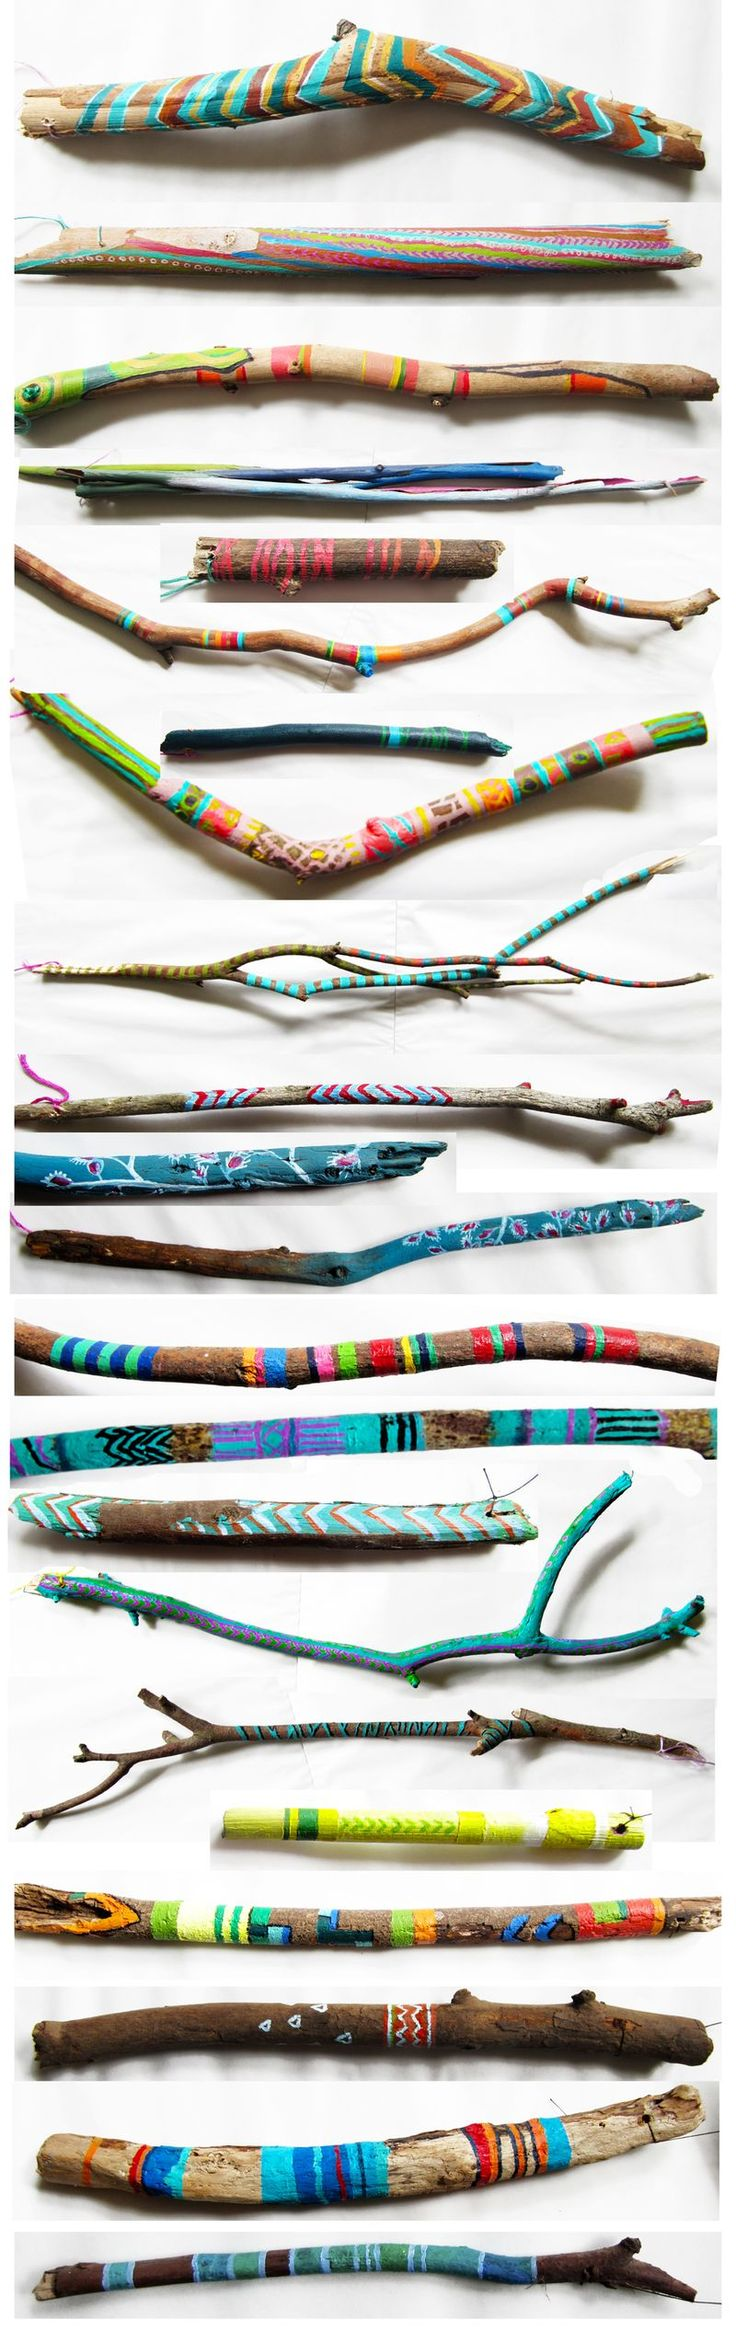 Painted sticks! We like to paint rocks and these look fun too.